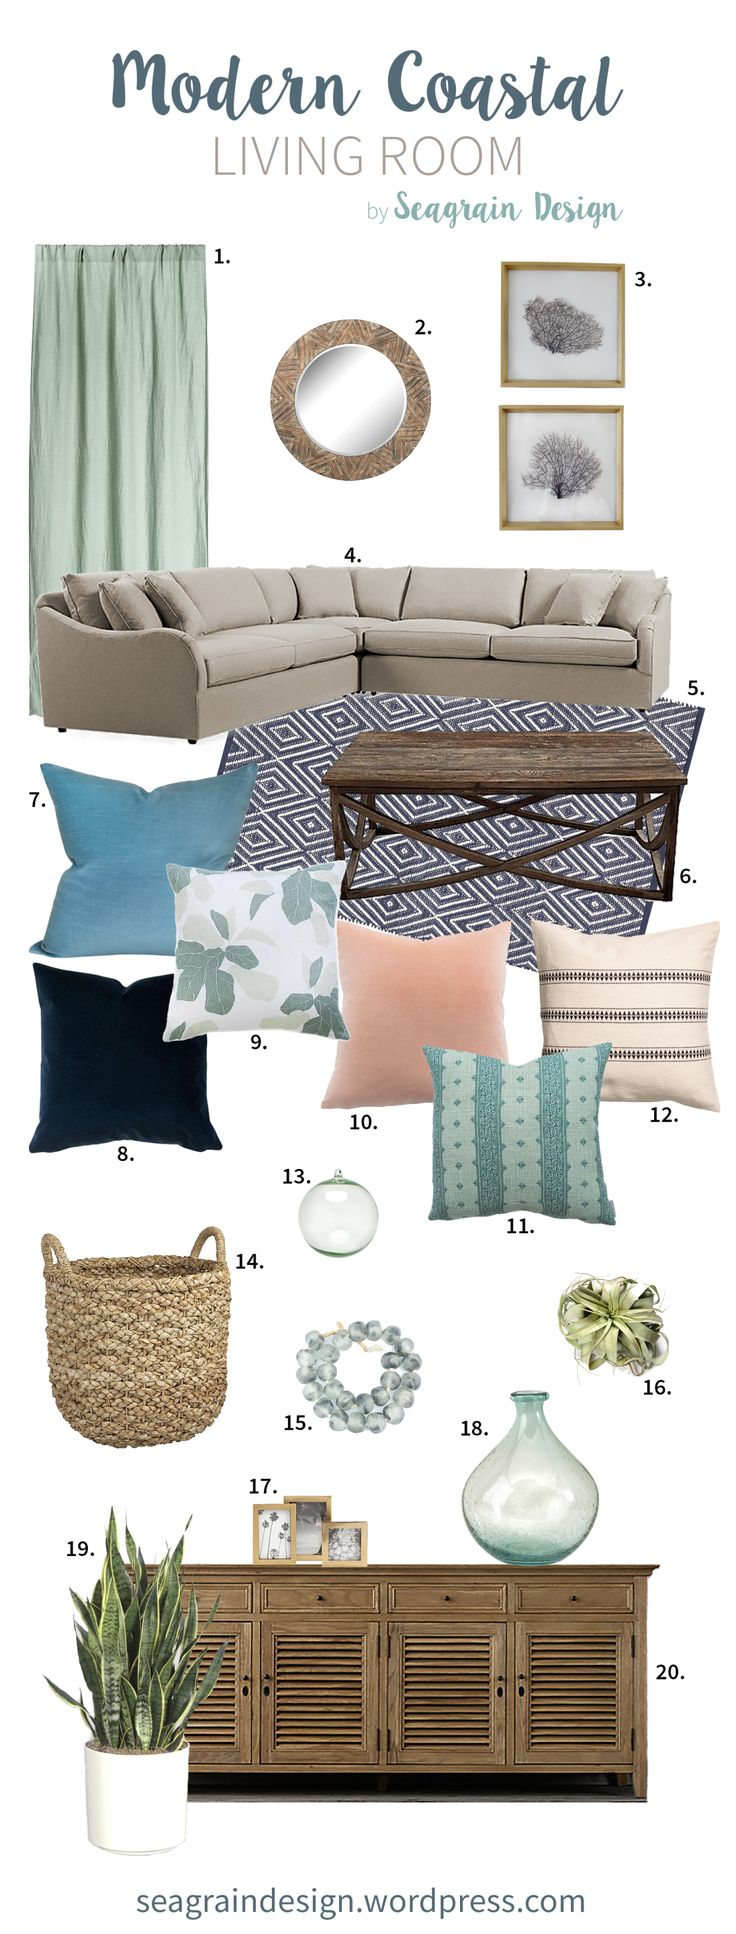 Modern Coastal Dream Living Room Mood Board by Seagrain Design